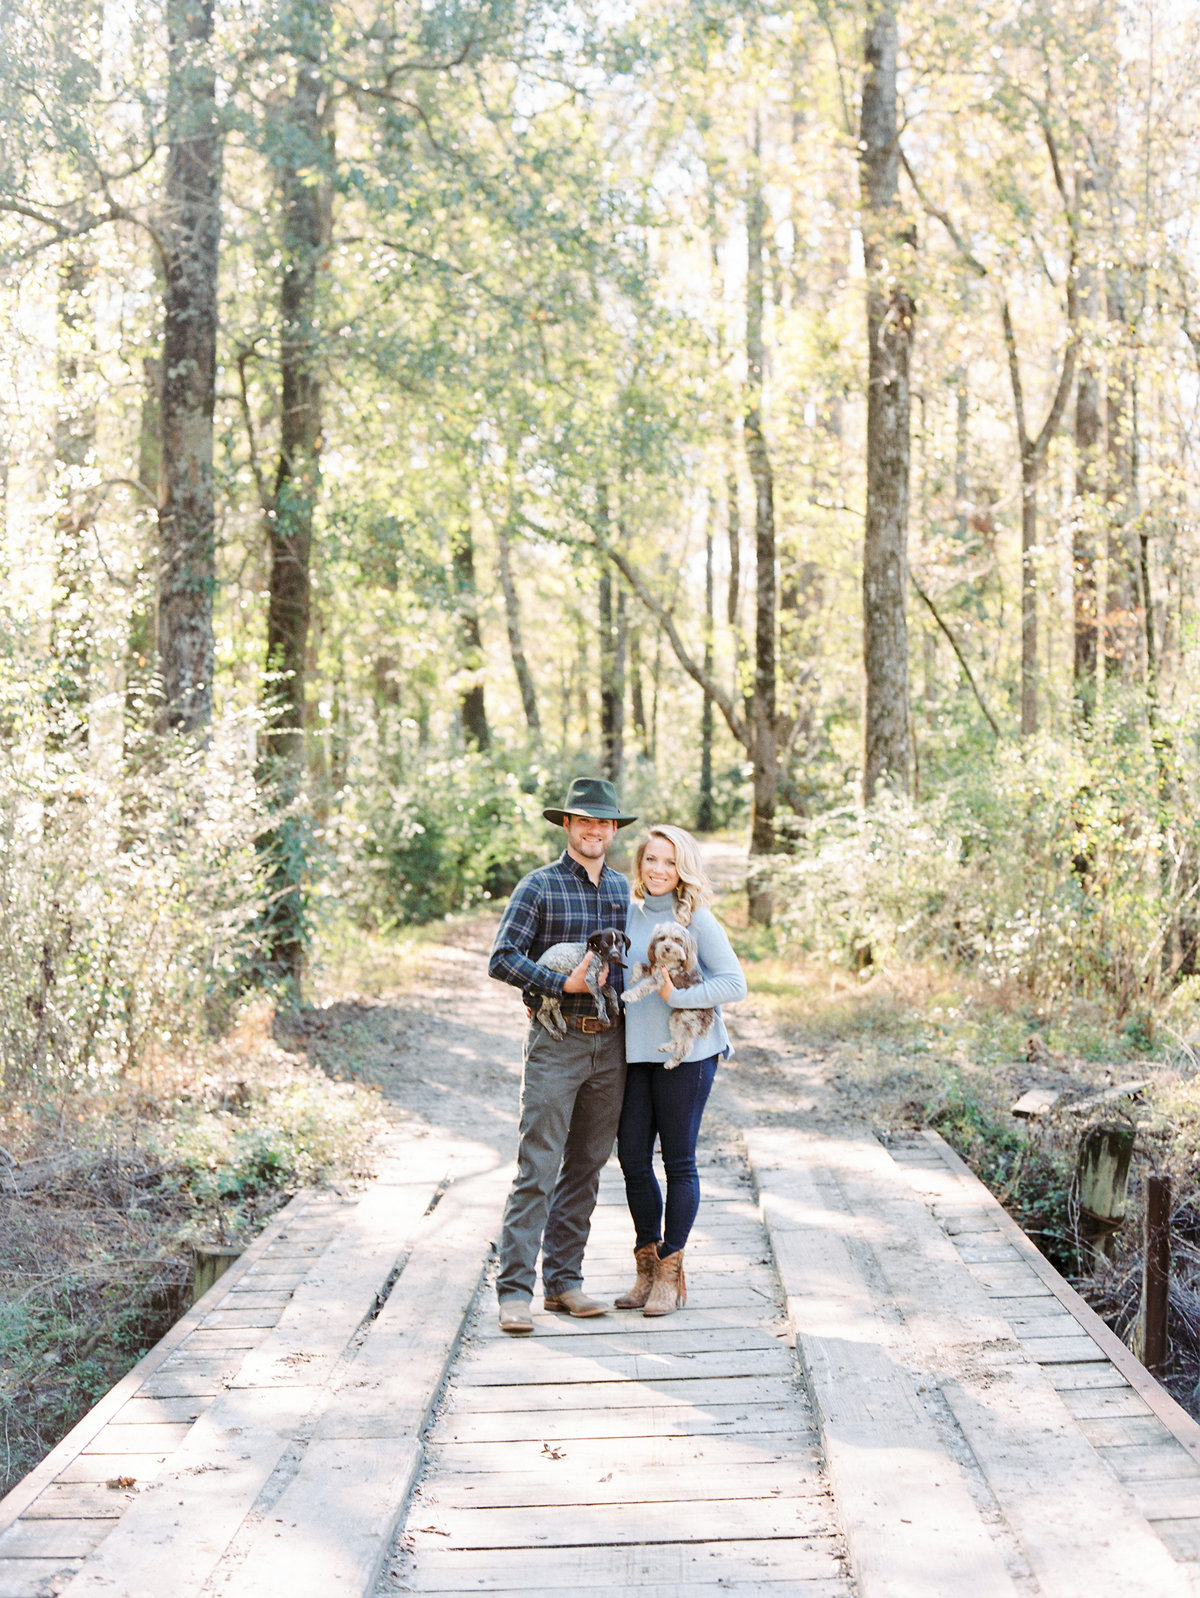 Walterboro-Beaufort-Downtown-Charleston-Engagement-01